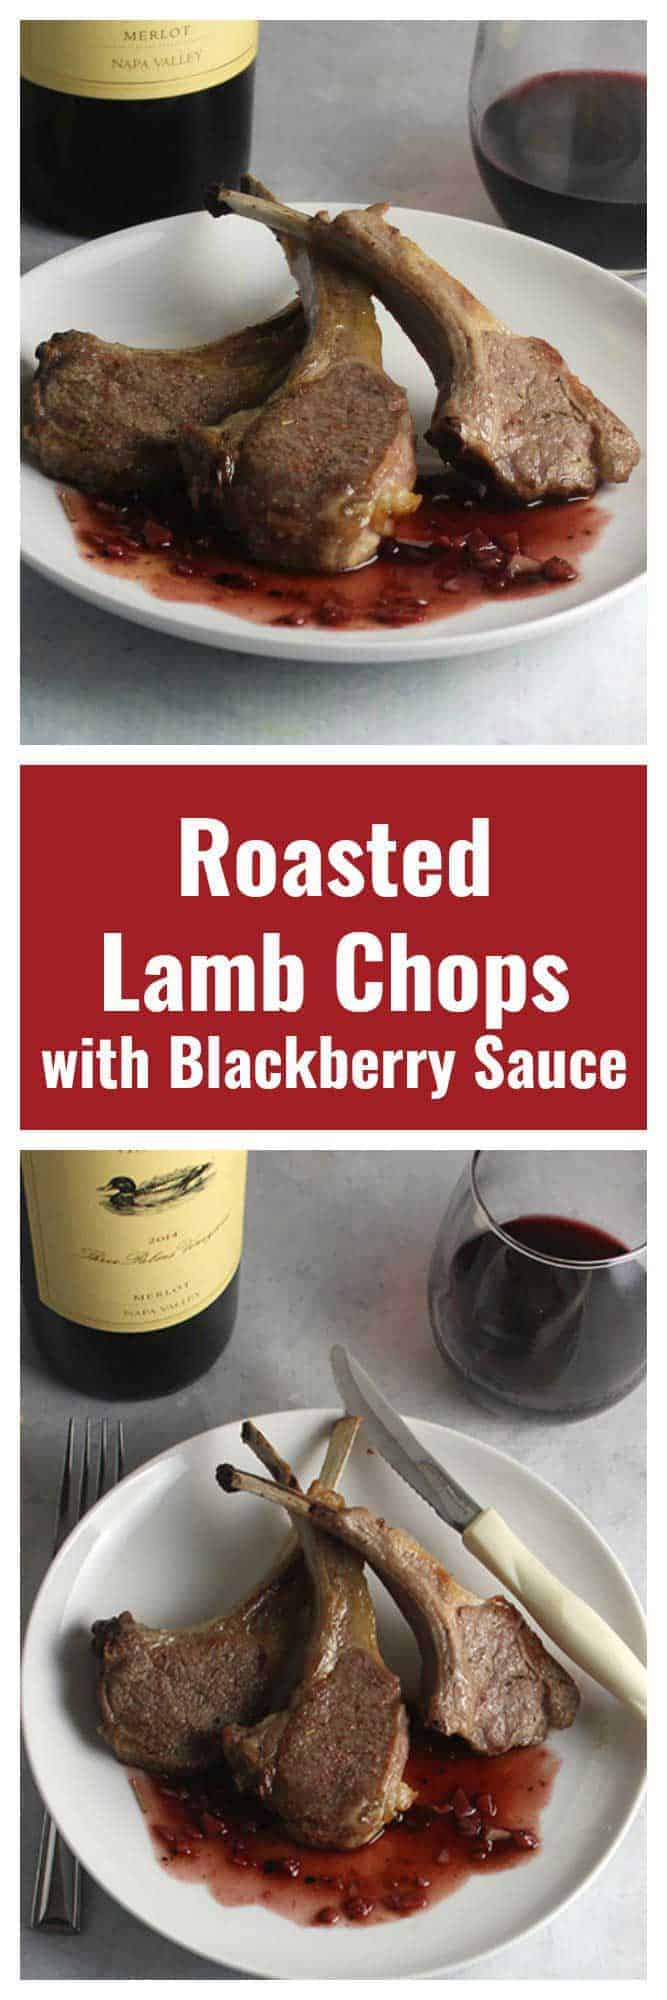 two images of roasted lamb chops with blackberry sauce, served with red wine.